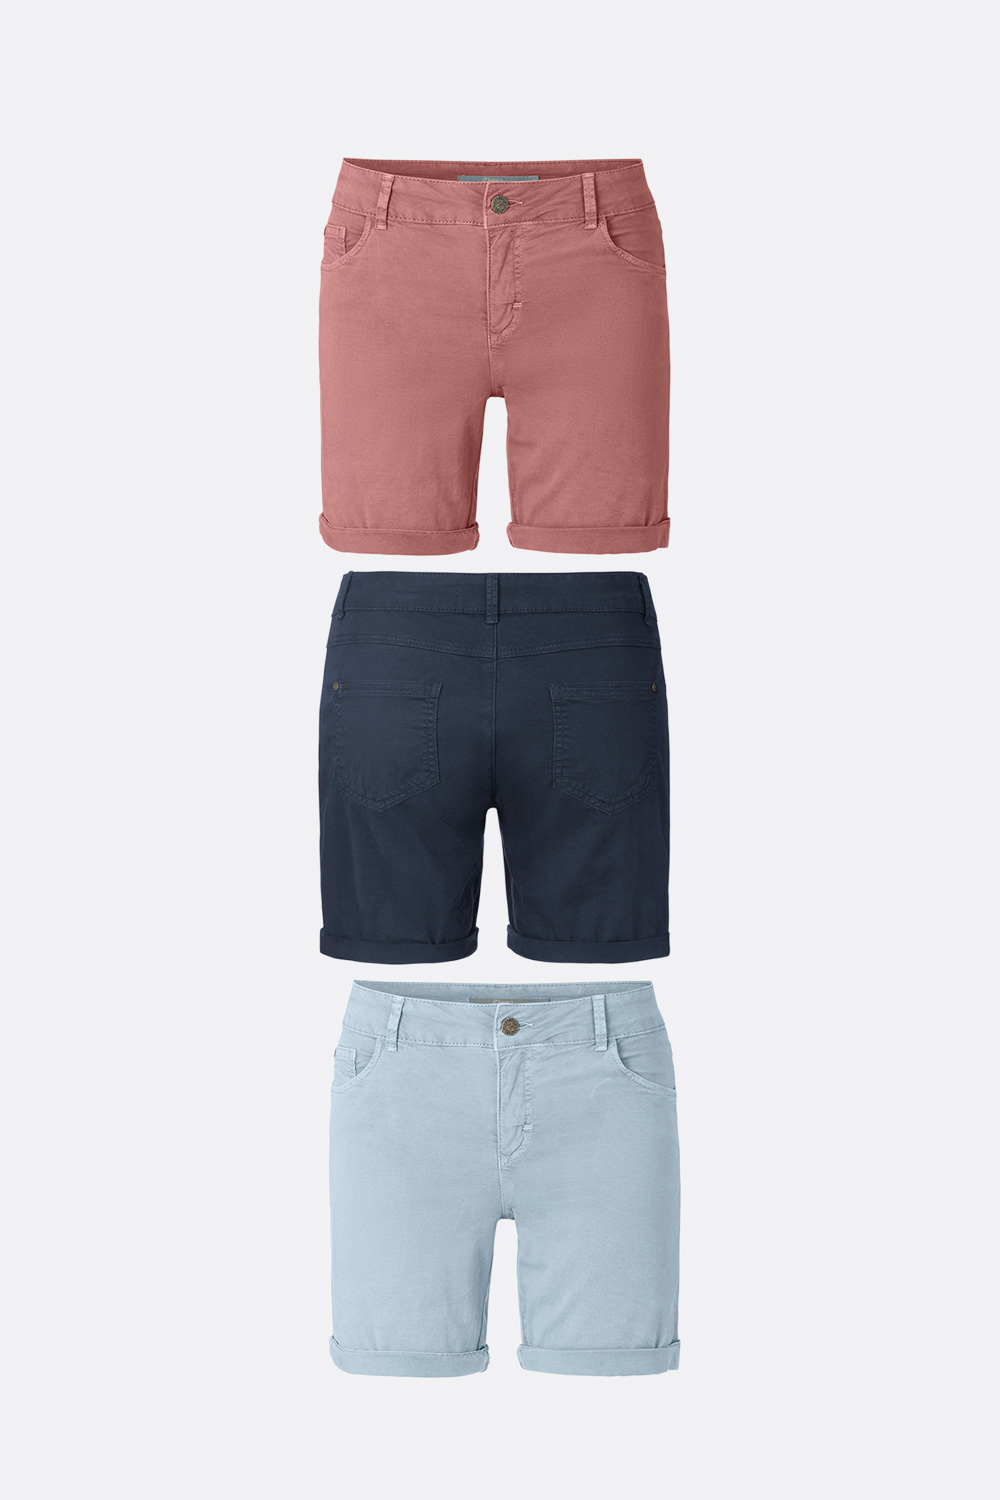 Damen Twillshorts